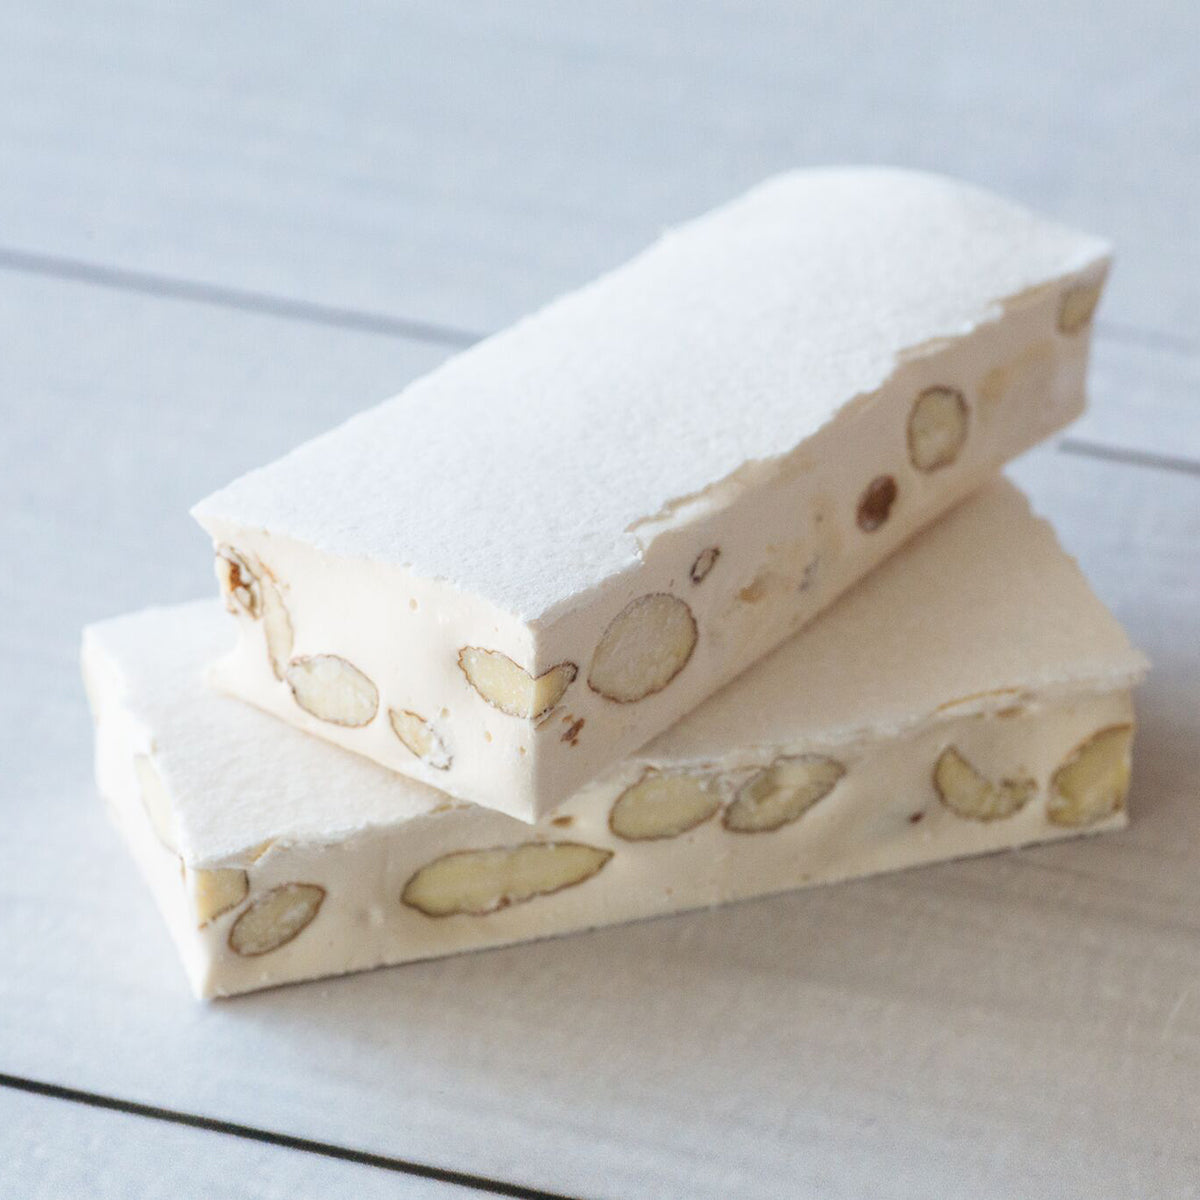 Roasted Almond Nougat - 5.29 oz Gable Gift Box